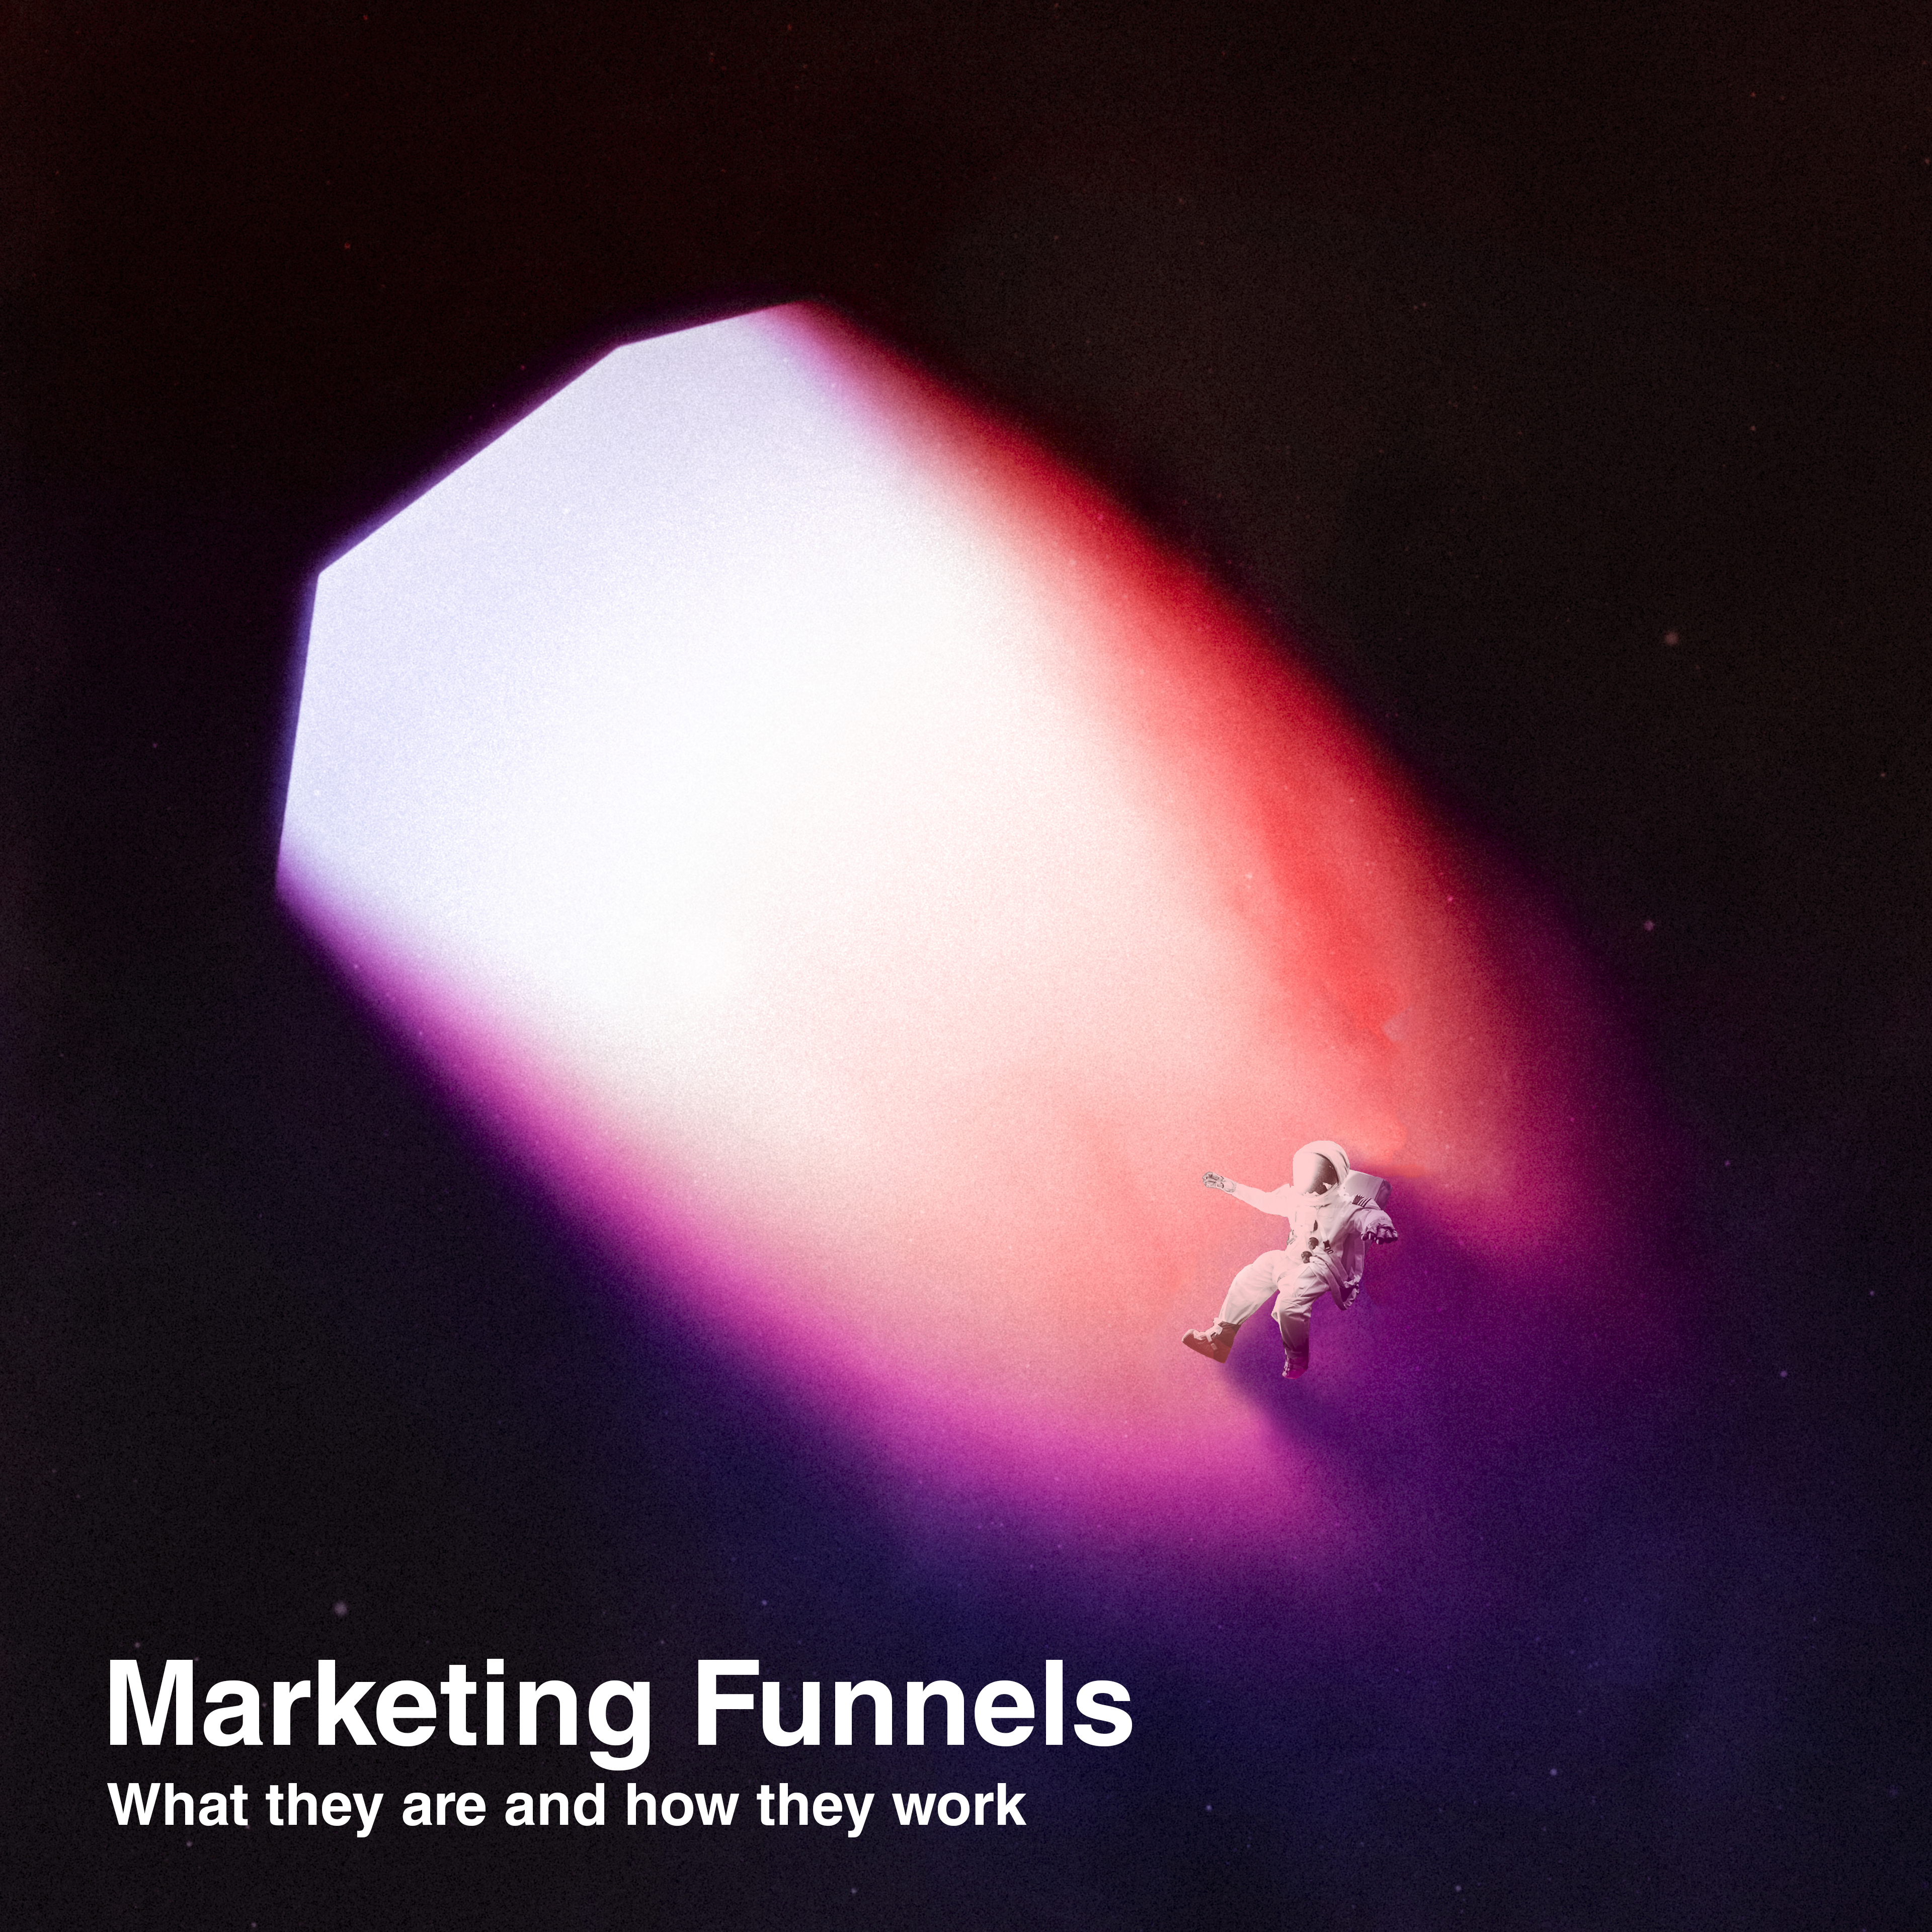 Marketing Funnels - What they are and how they work